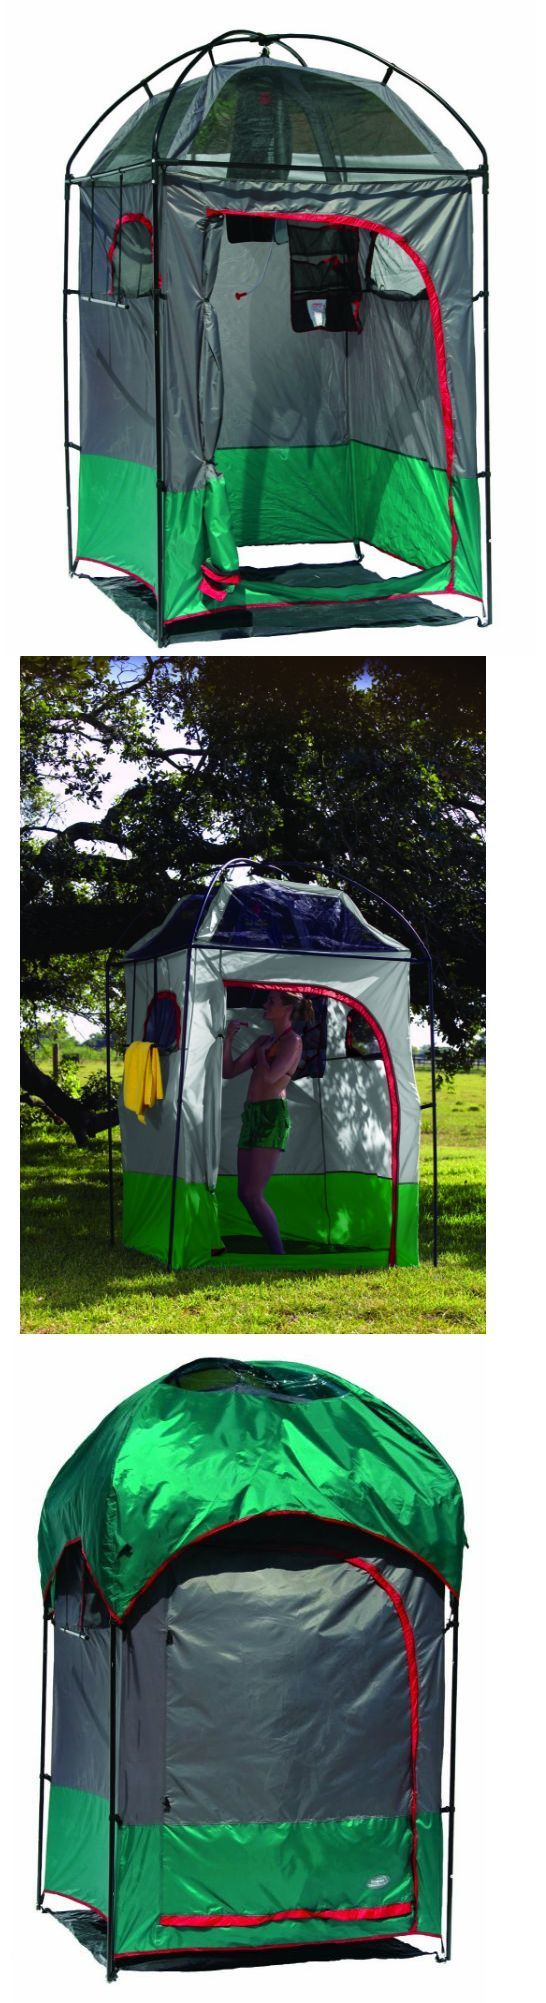 Portable Showers and Accessories 181396: Camping Shower Tent Outdoor Portable Shower Tents Changing Room Privacy Shelter -> BUY IT NOW ONLY: $114.99 on eBay!